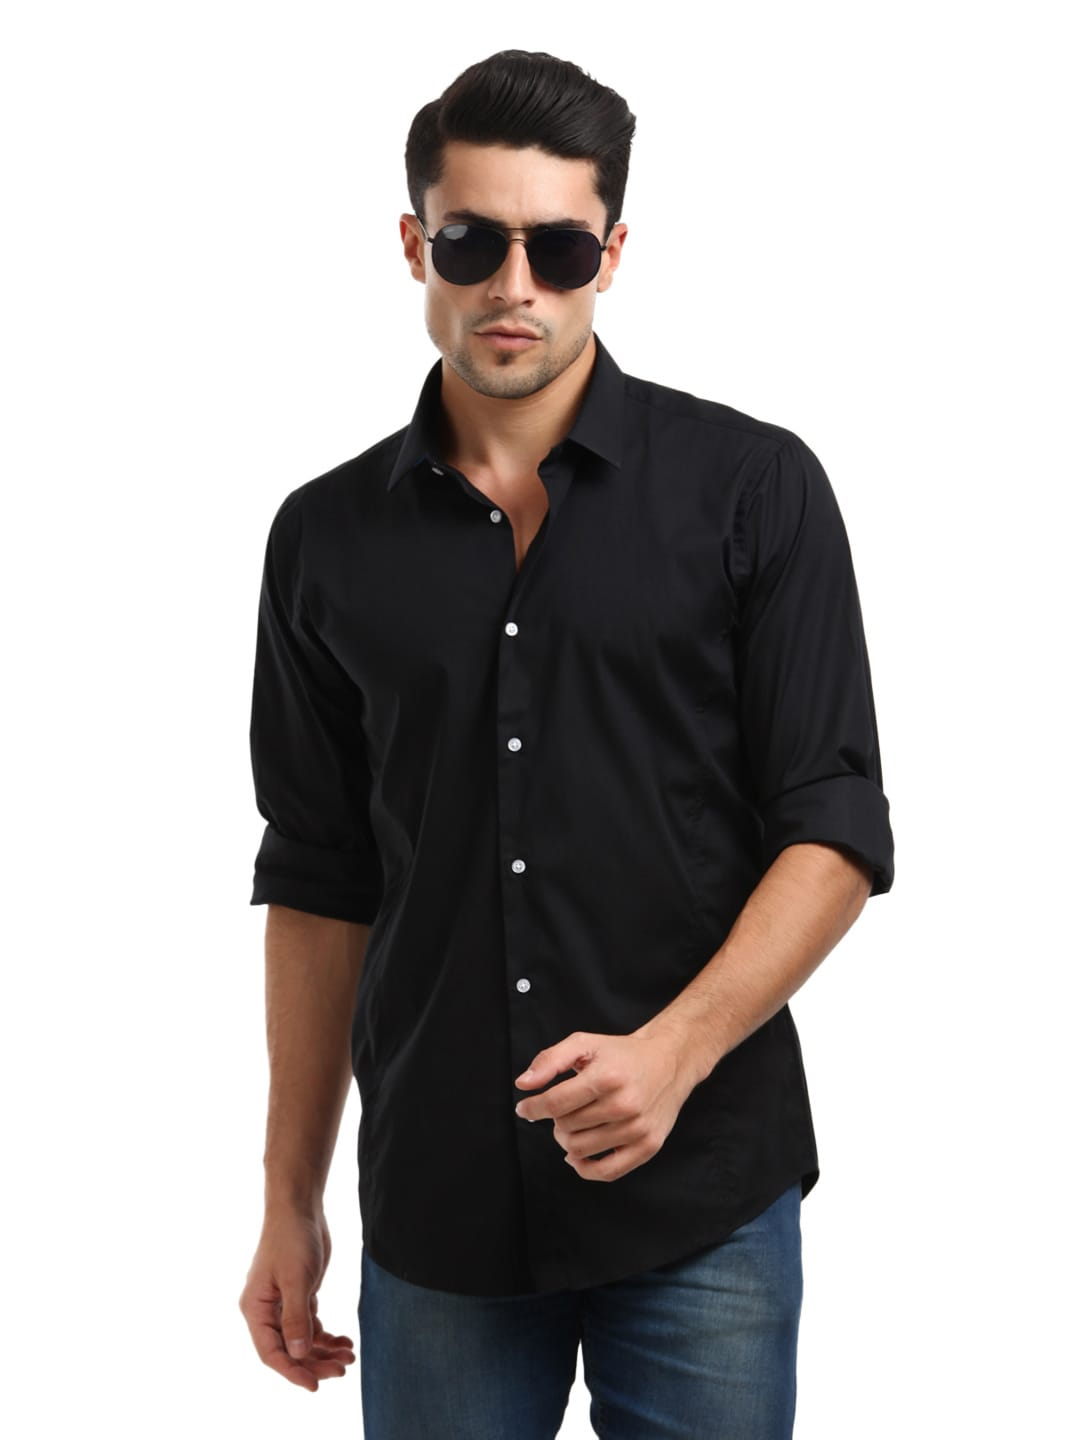 Buy arrow new york men black slim fit shirt 320 for Black tuxedo shirt for men